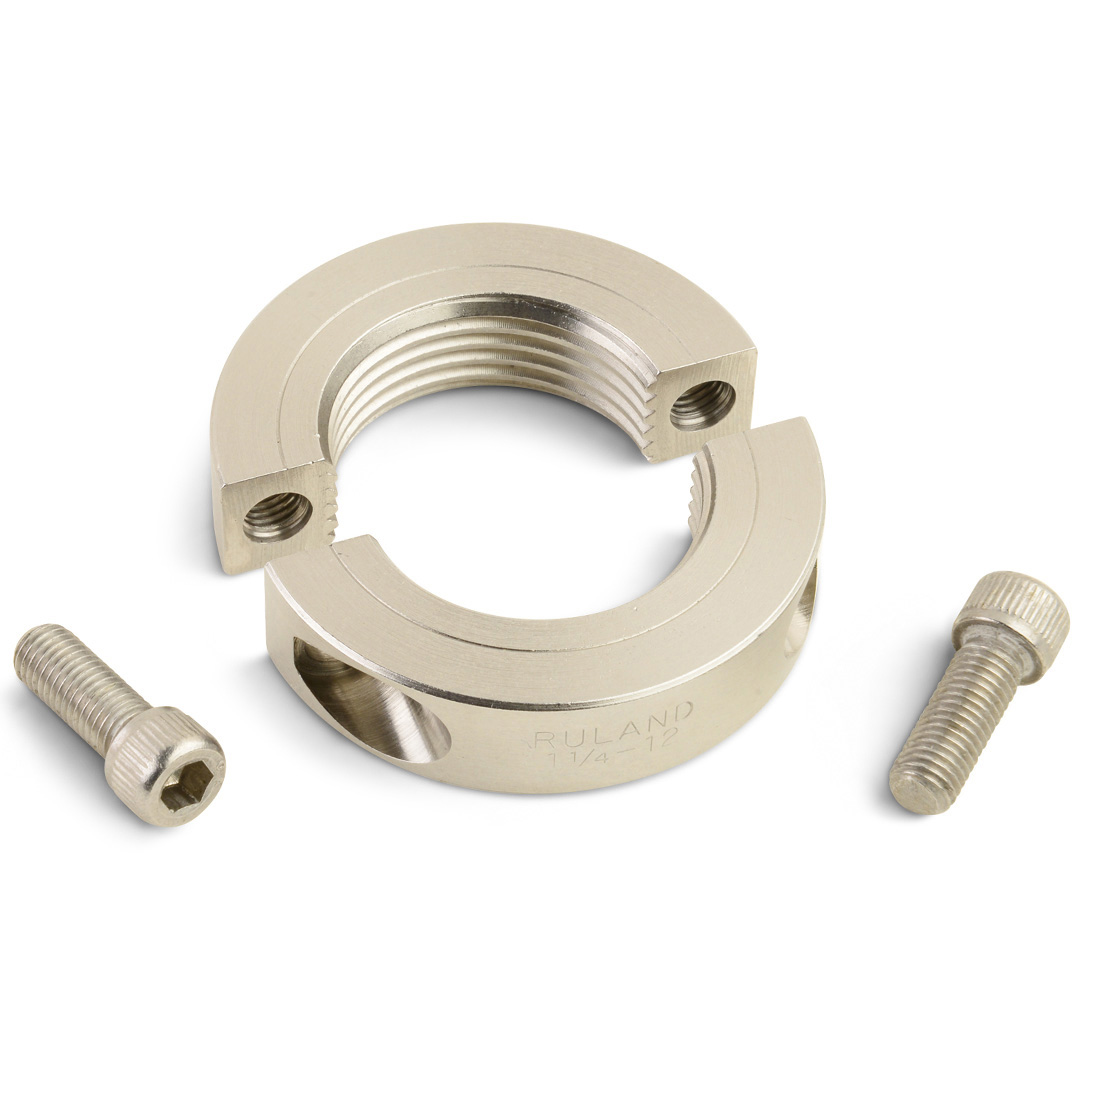 Left hand threaded shaft collars are available in one- and two-piece clamp style with inch and metric bore sizes available from 1/8 inch to 2-1/4 inches (4 mm to 30 mm)